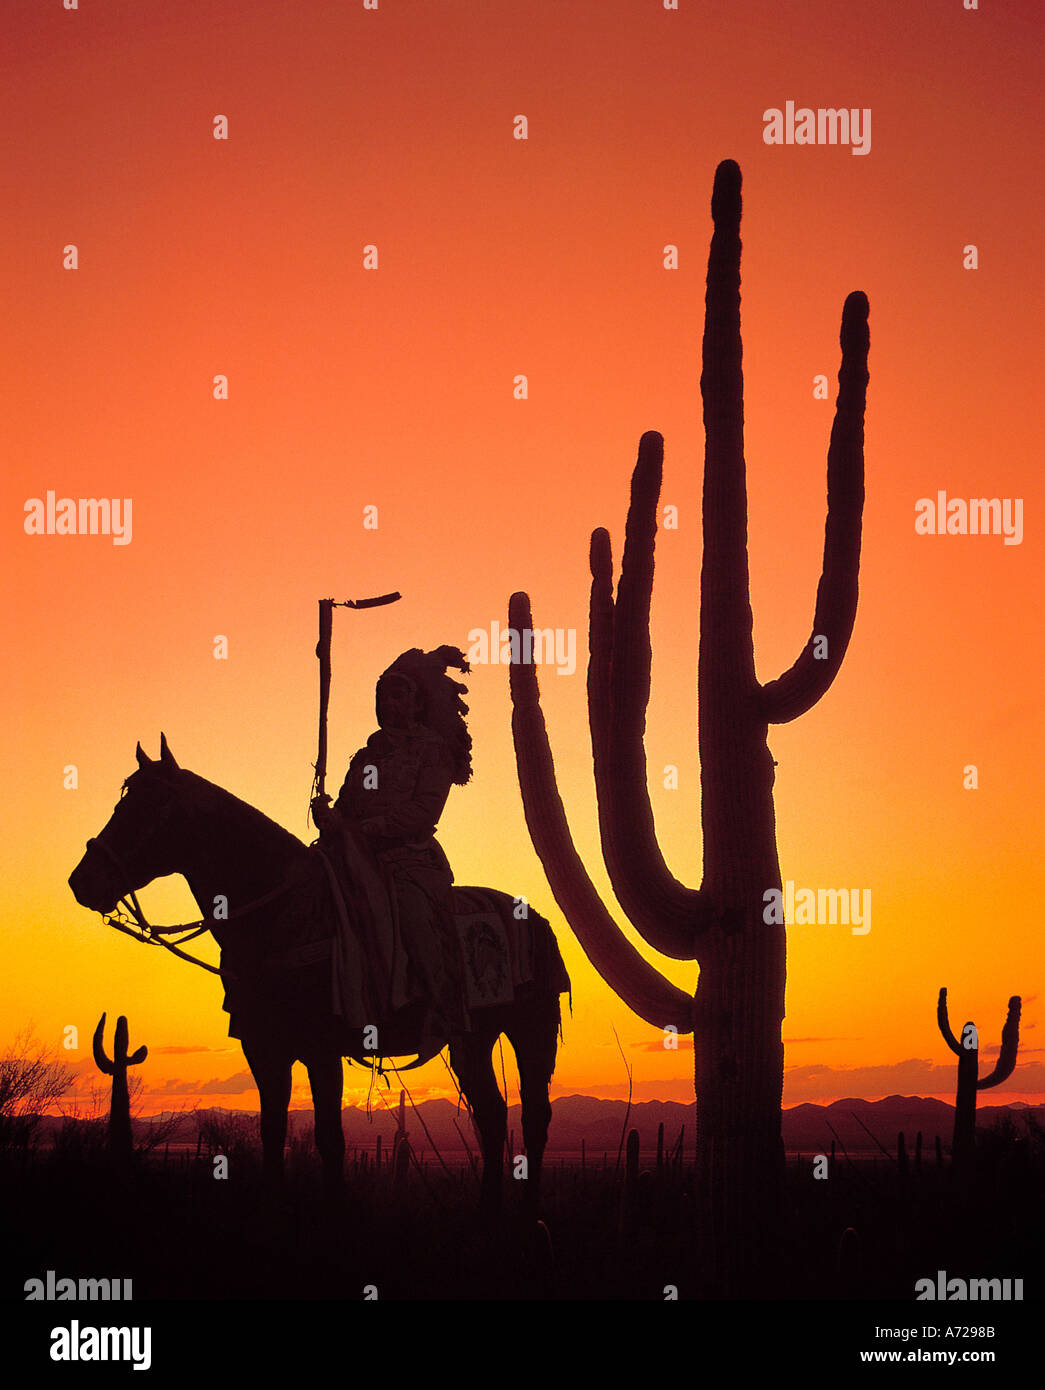 Indians Riding Horses High Resolution Stock Photography And Images Alamy